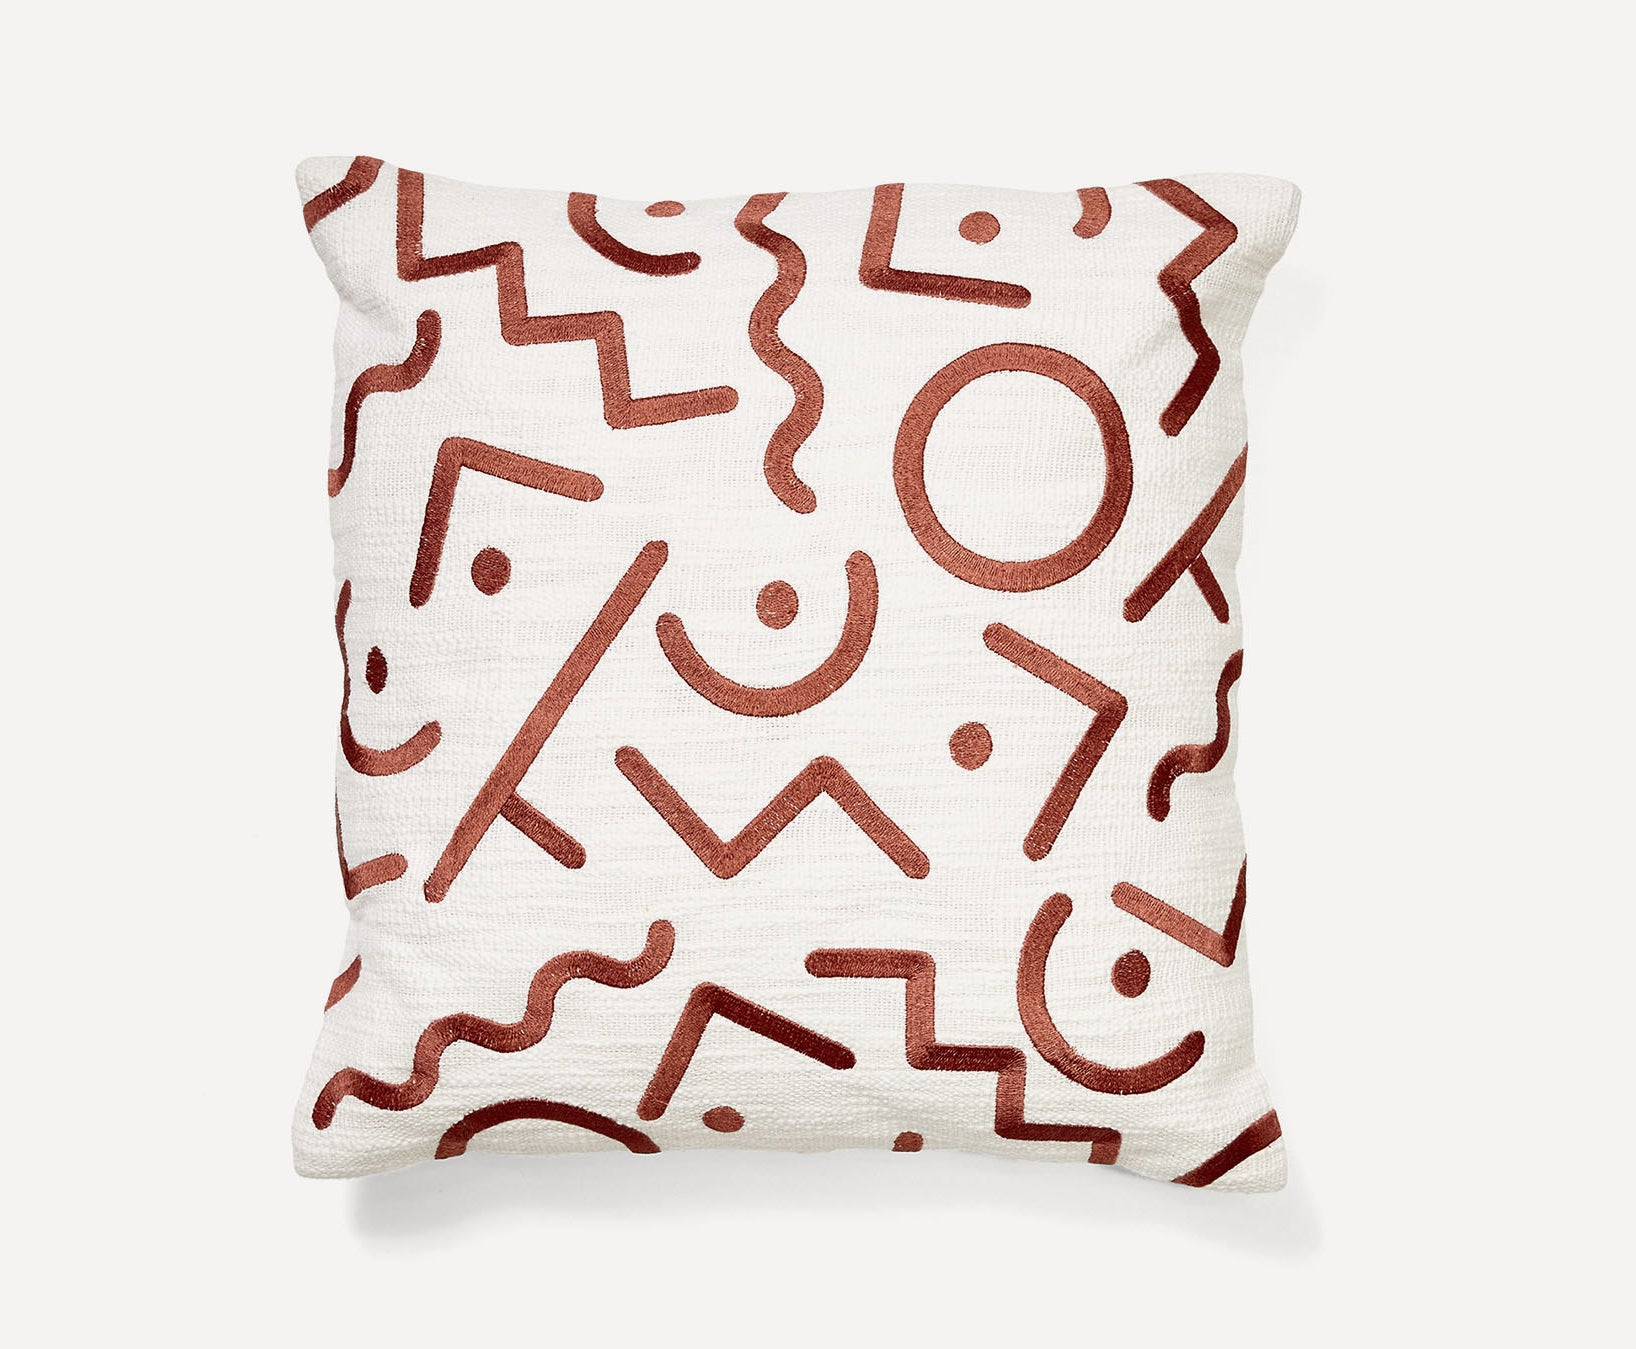 the cream and red pillow cover